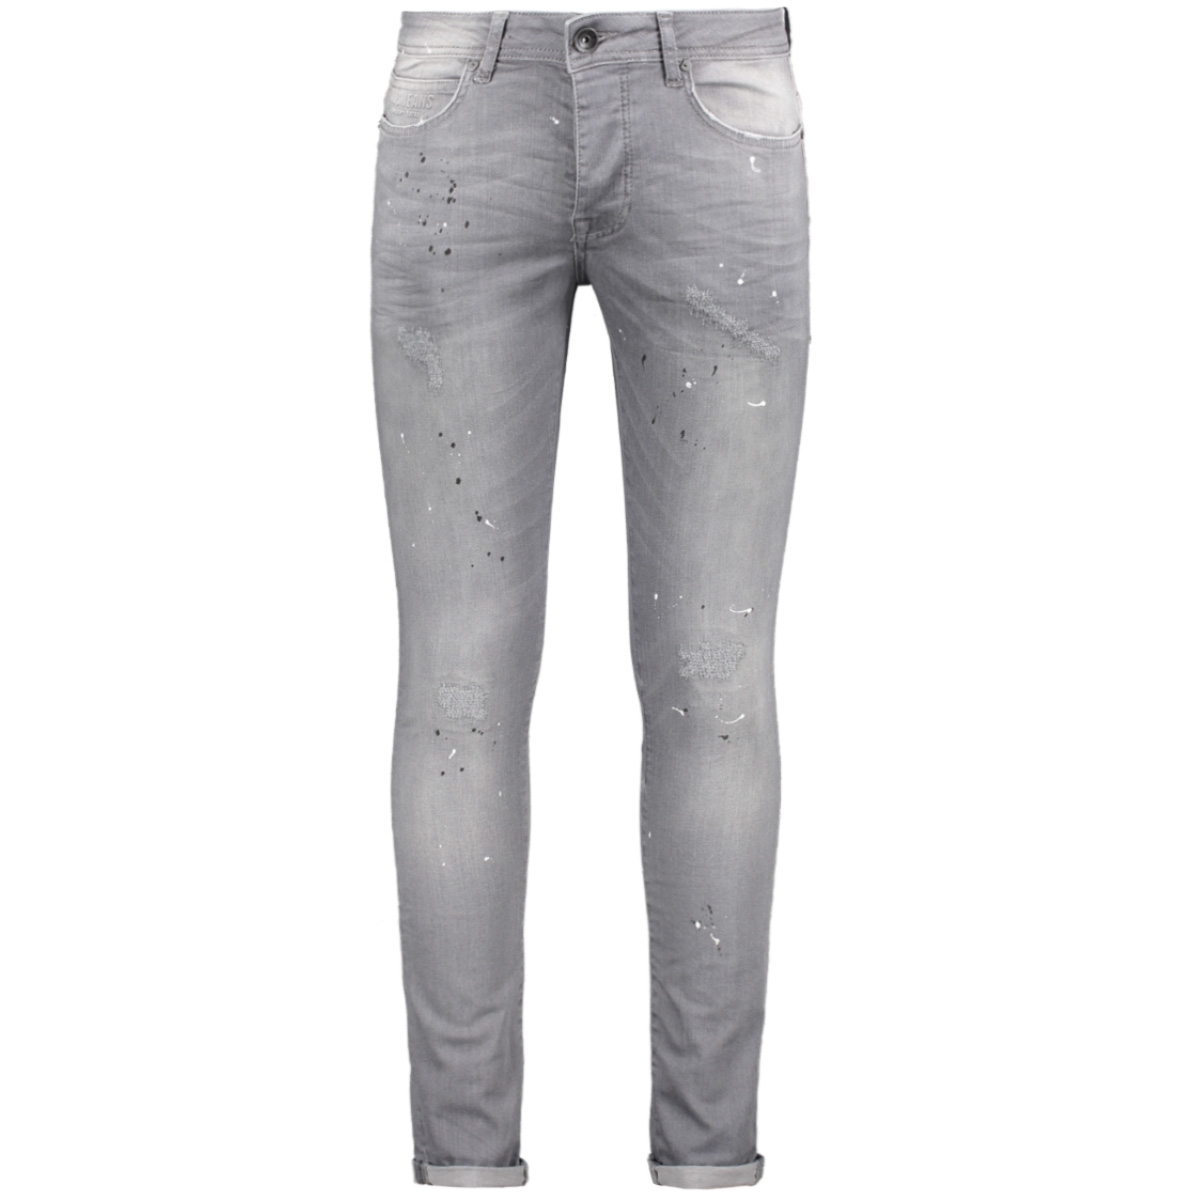 cavin super skinny 79538 cars jeans 13 grey used